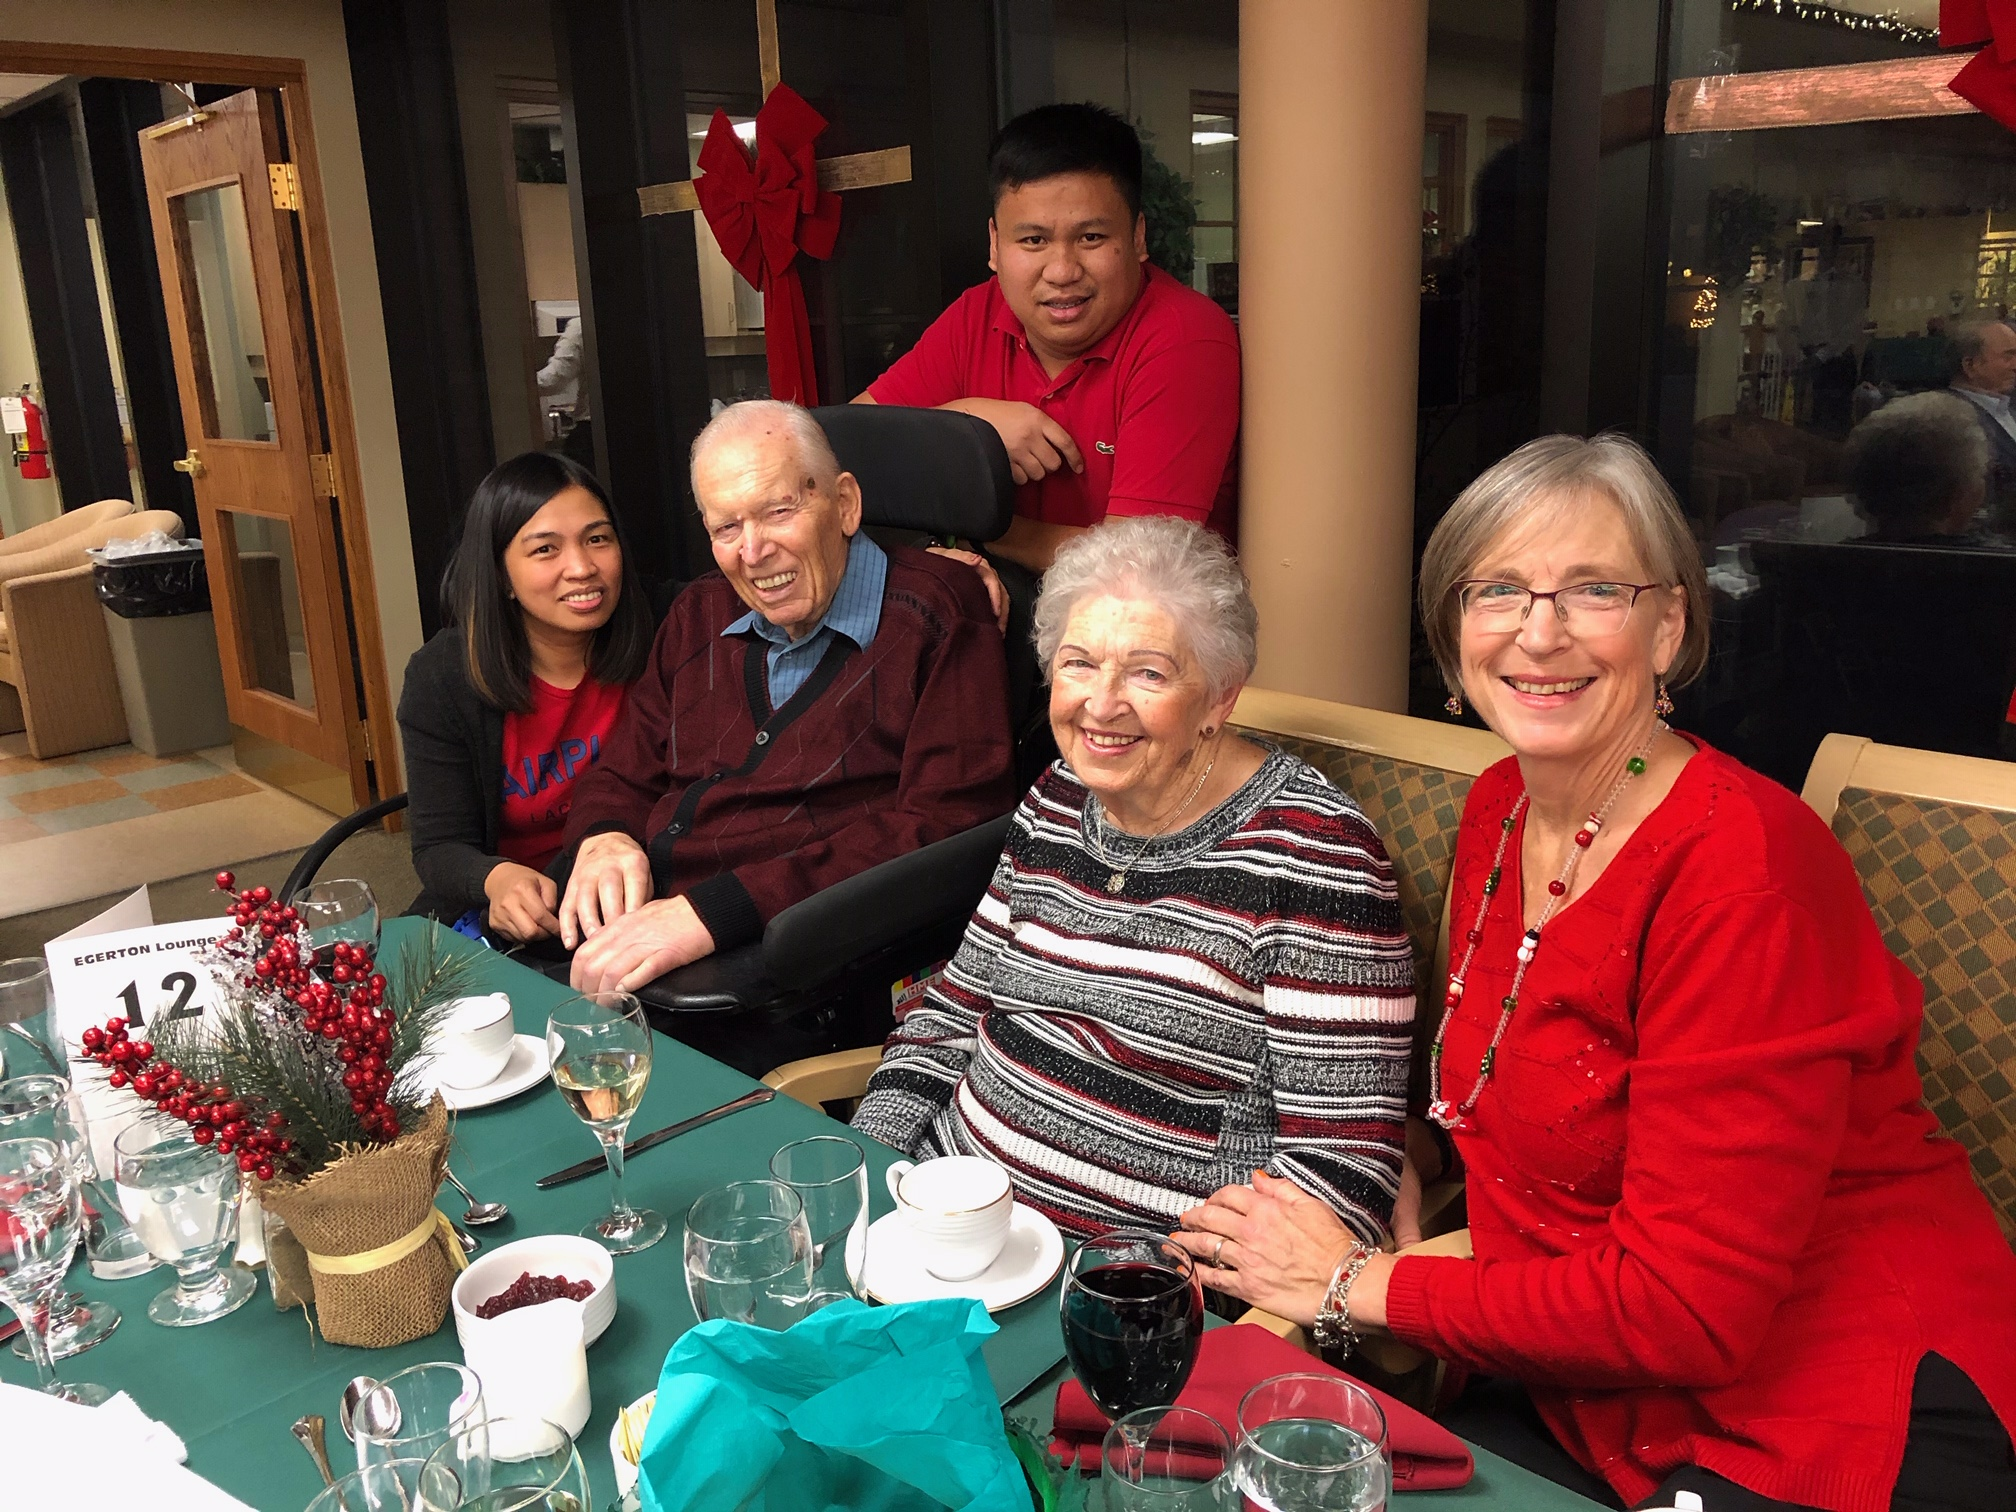 During the 2019 Christmas season, Don, Claudette and Patricia  spent time with caregivers Joy and Patrick in the Egerton Neighbourhood.